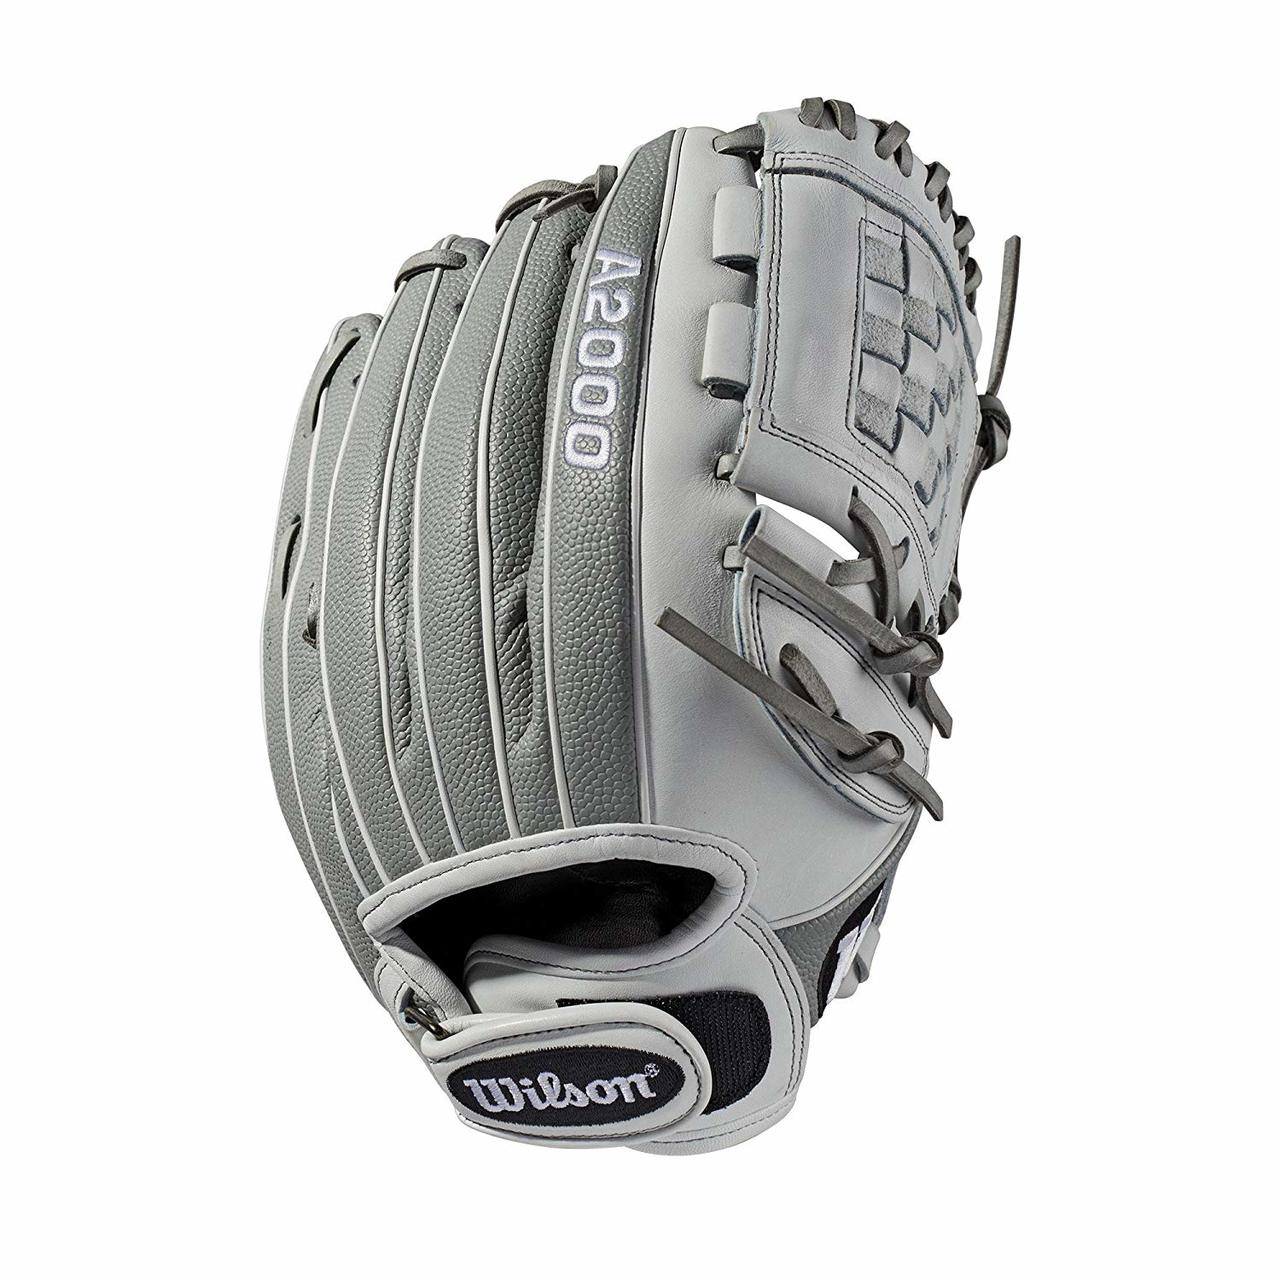 wilson-2019-a2000-fasptich-softball-glove-12-right-hand-throw WTA20RF19P12-RightHandThrow Wilson 887768702144 Pitcher model; fast pitch-specific model; available in right- and left-hand Throw